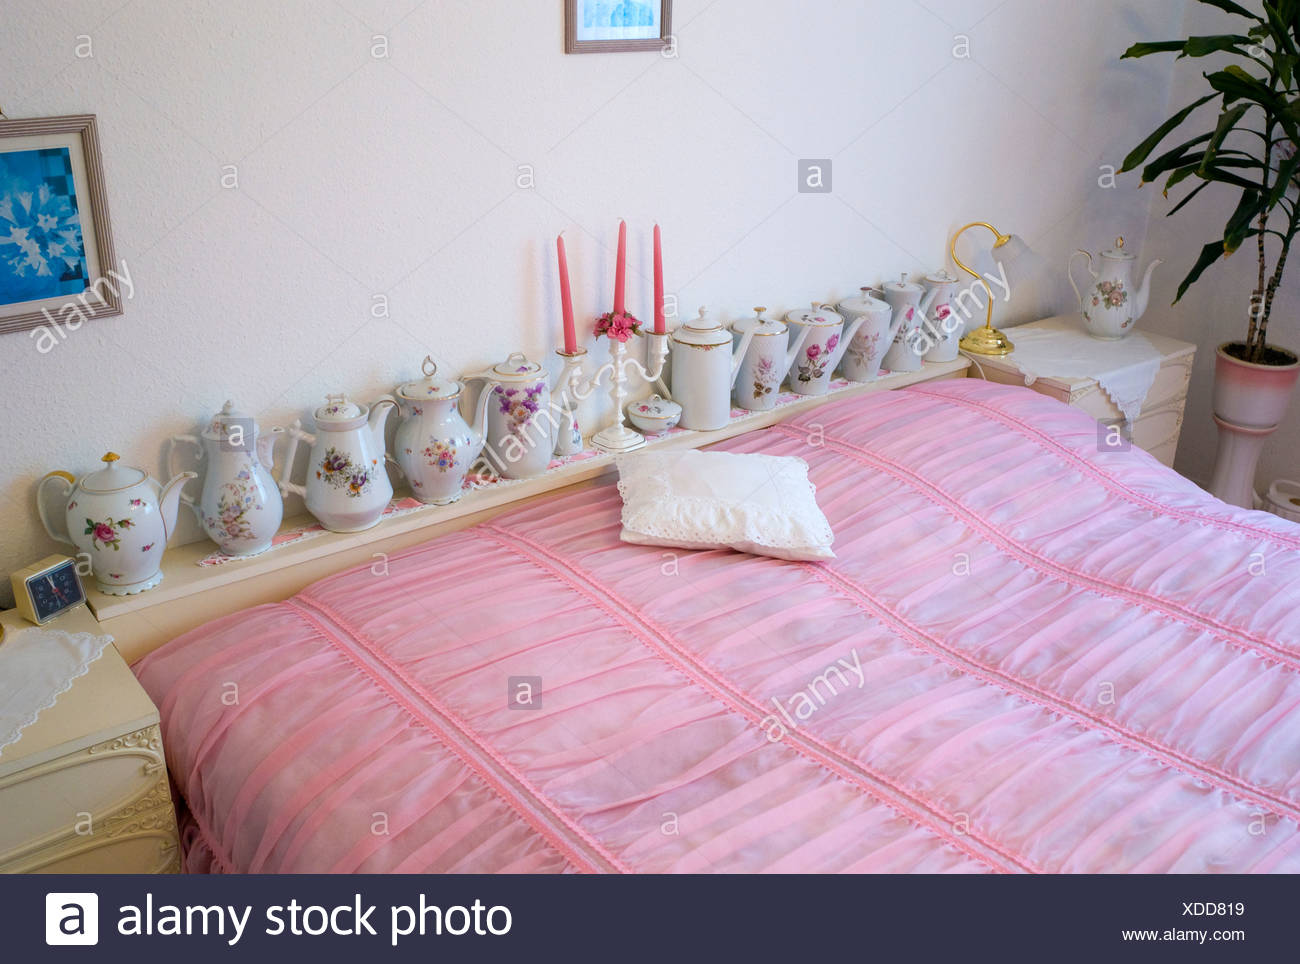 Old fashioned bedroom with pink bedspread and teapots, Germany, Europe - Stock Image